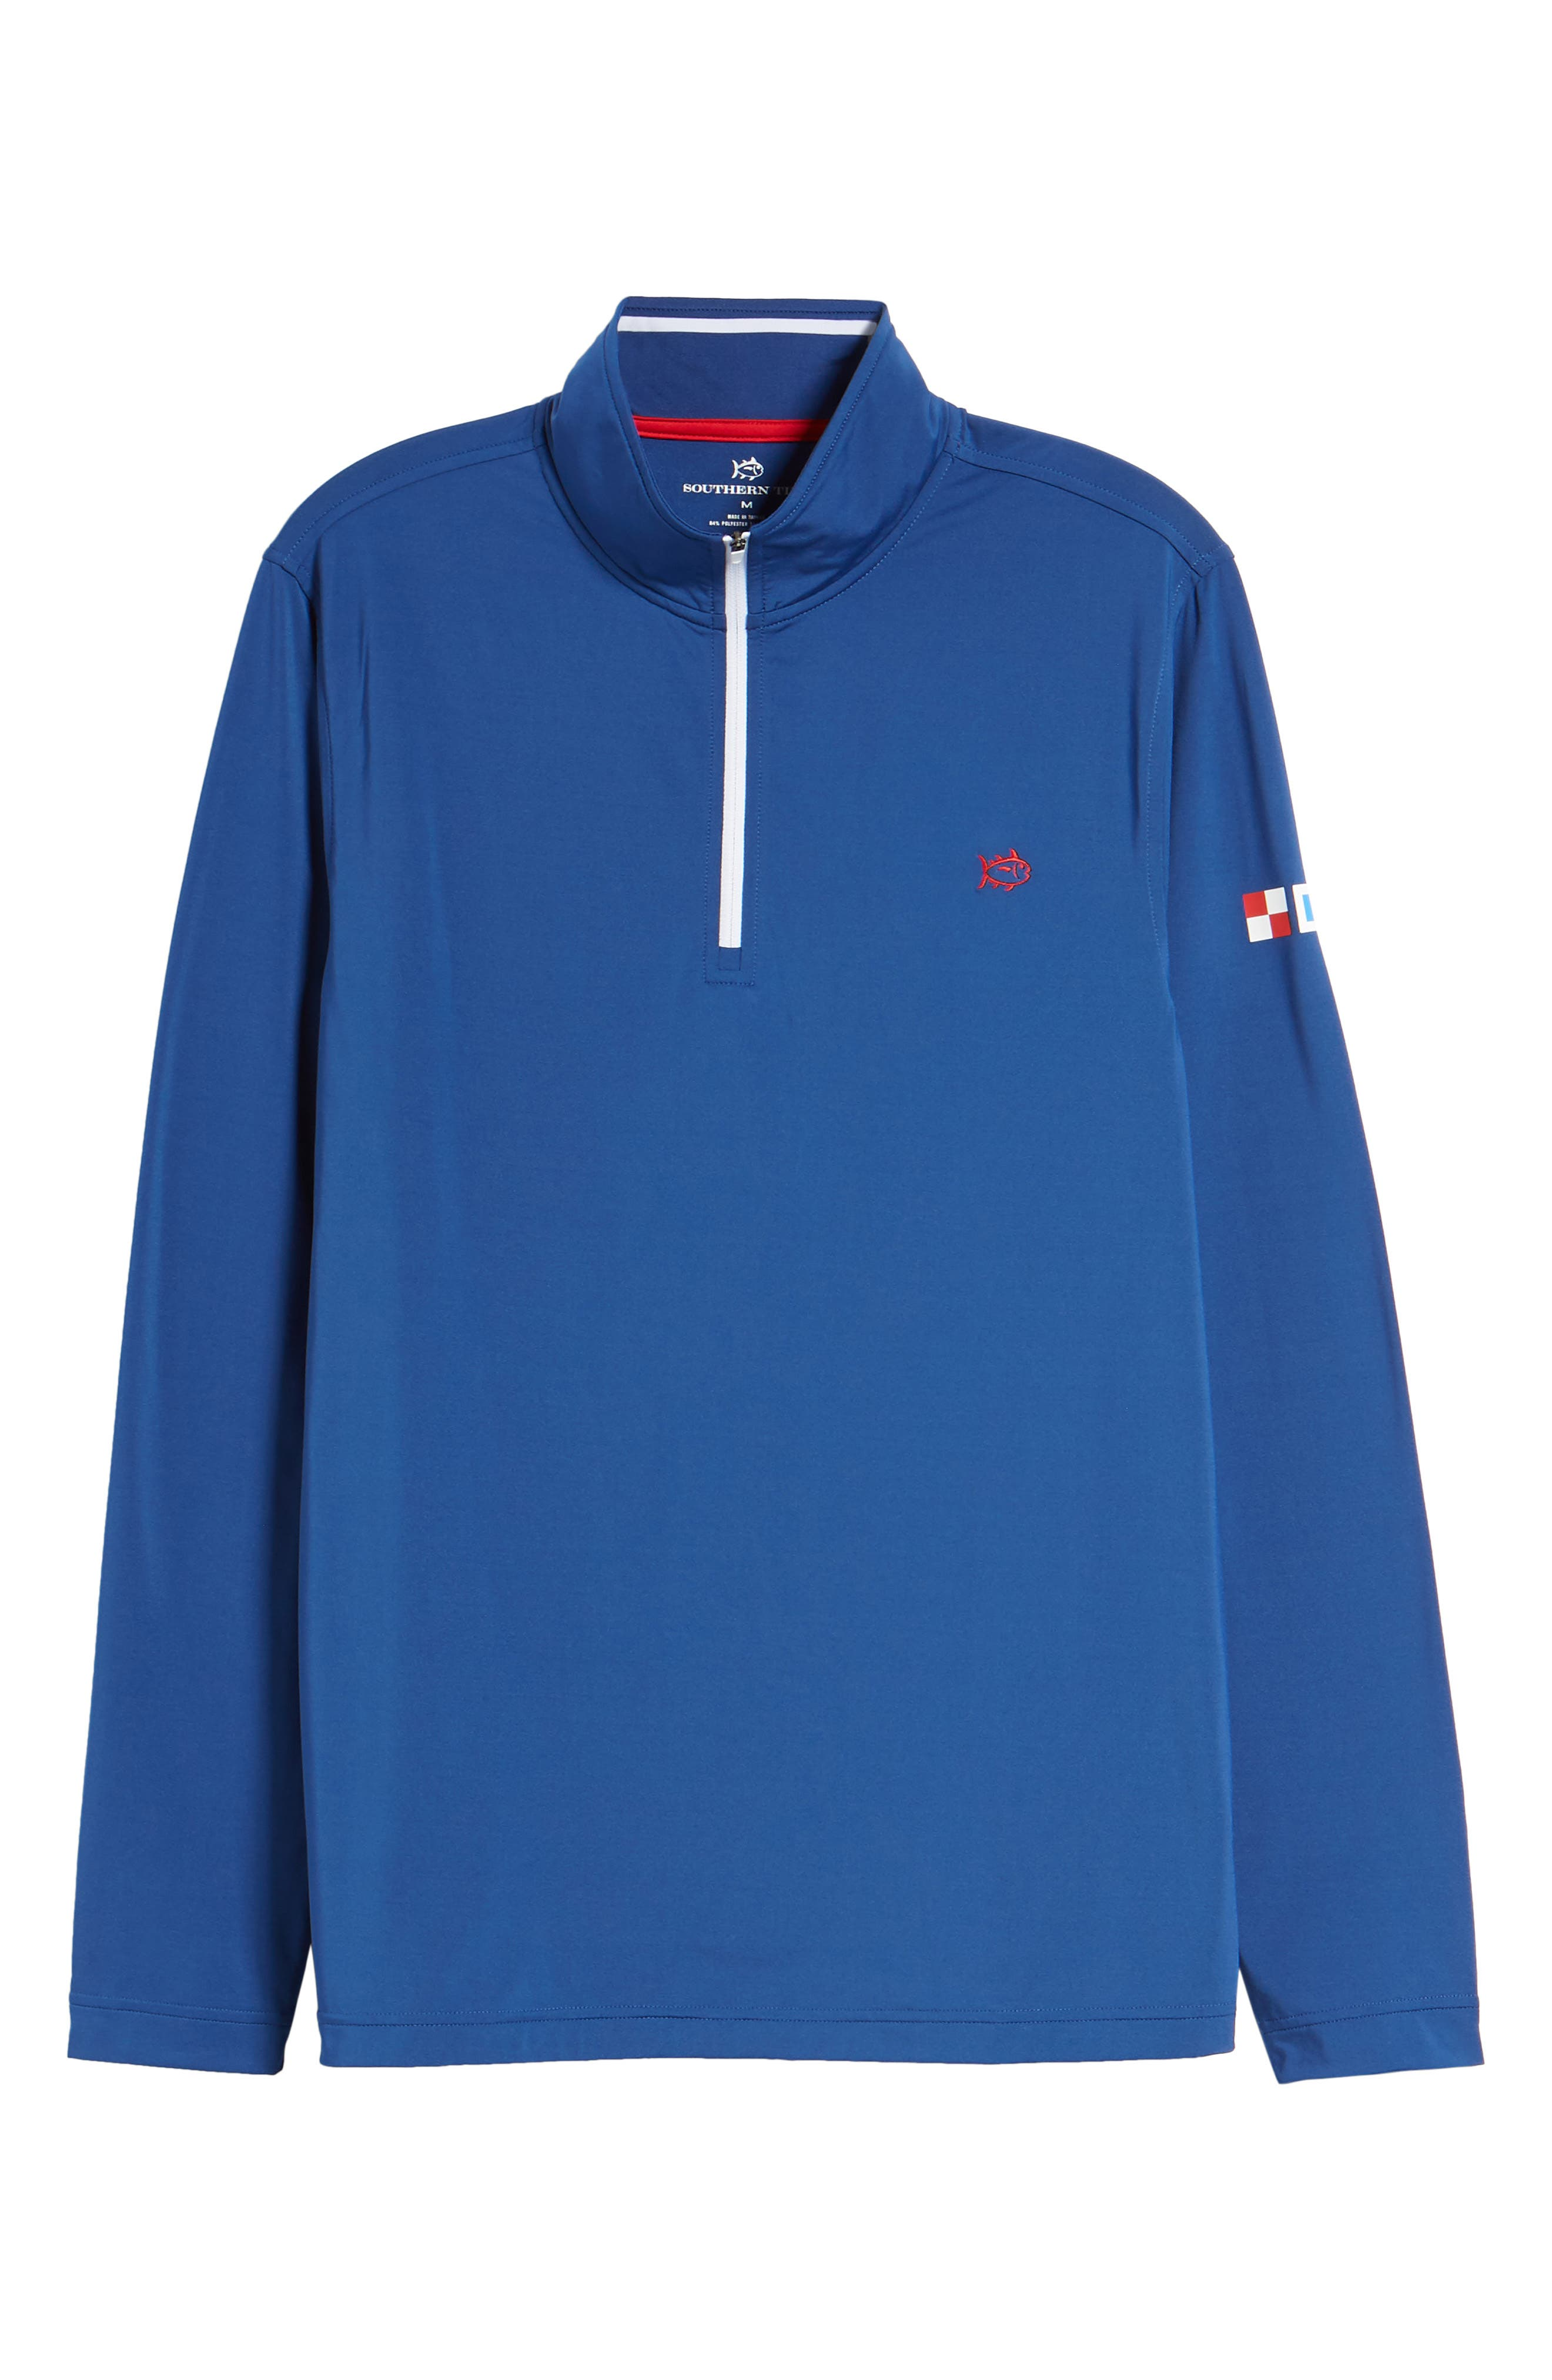 USA Performance Quarter-Zip Pullover,                             Alternate thumbnail 5, color,                             400